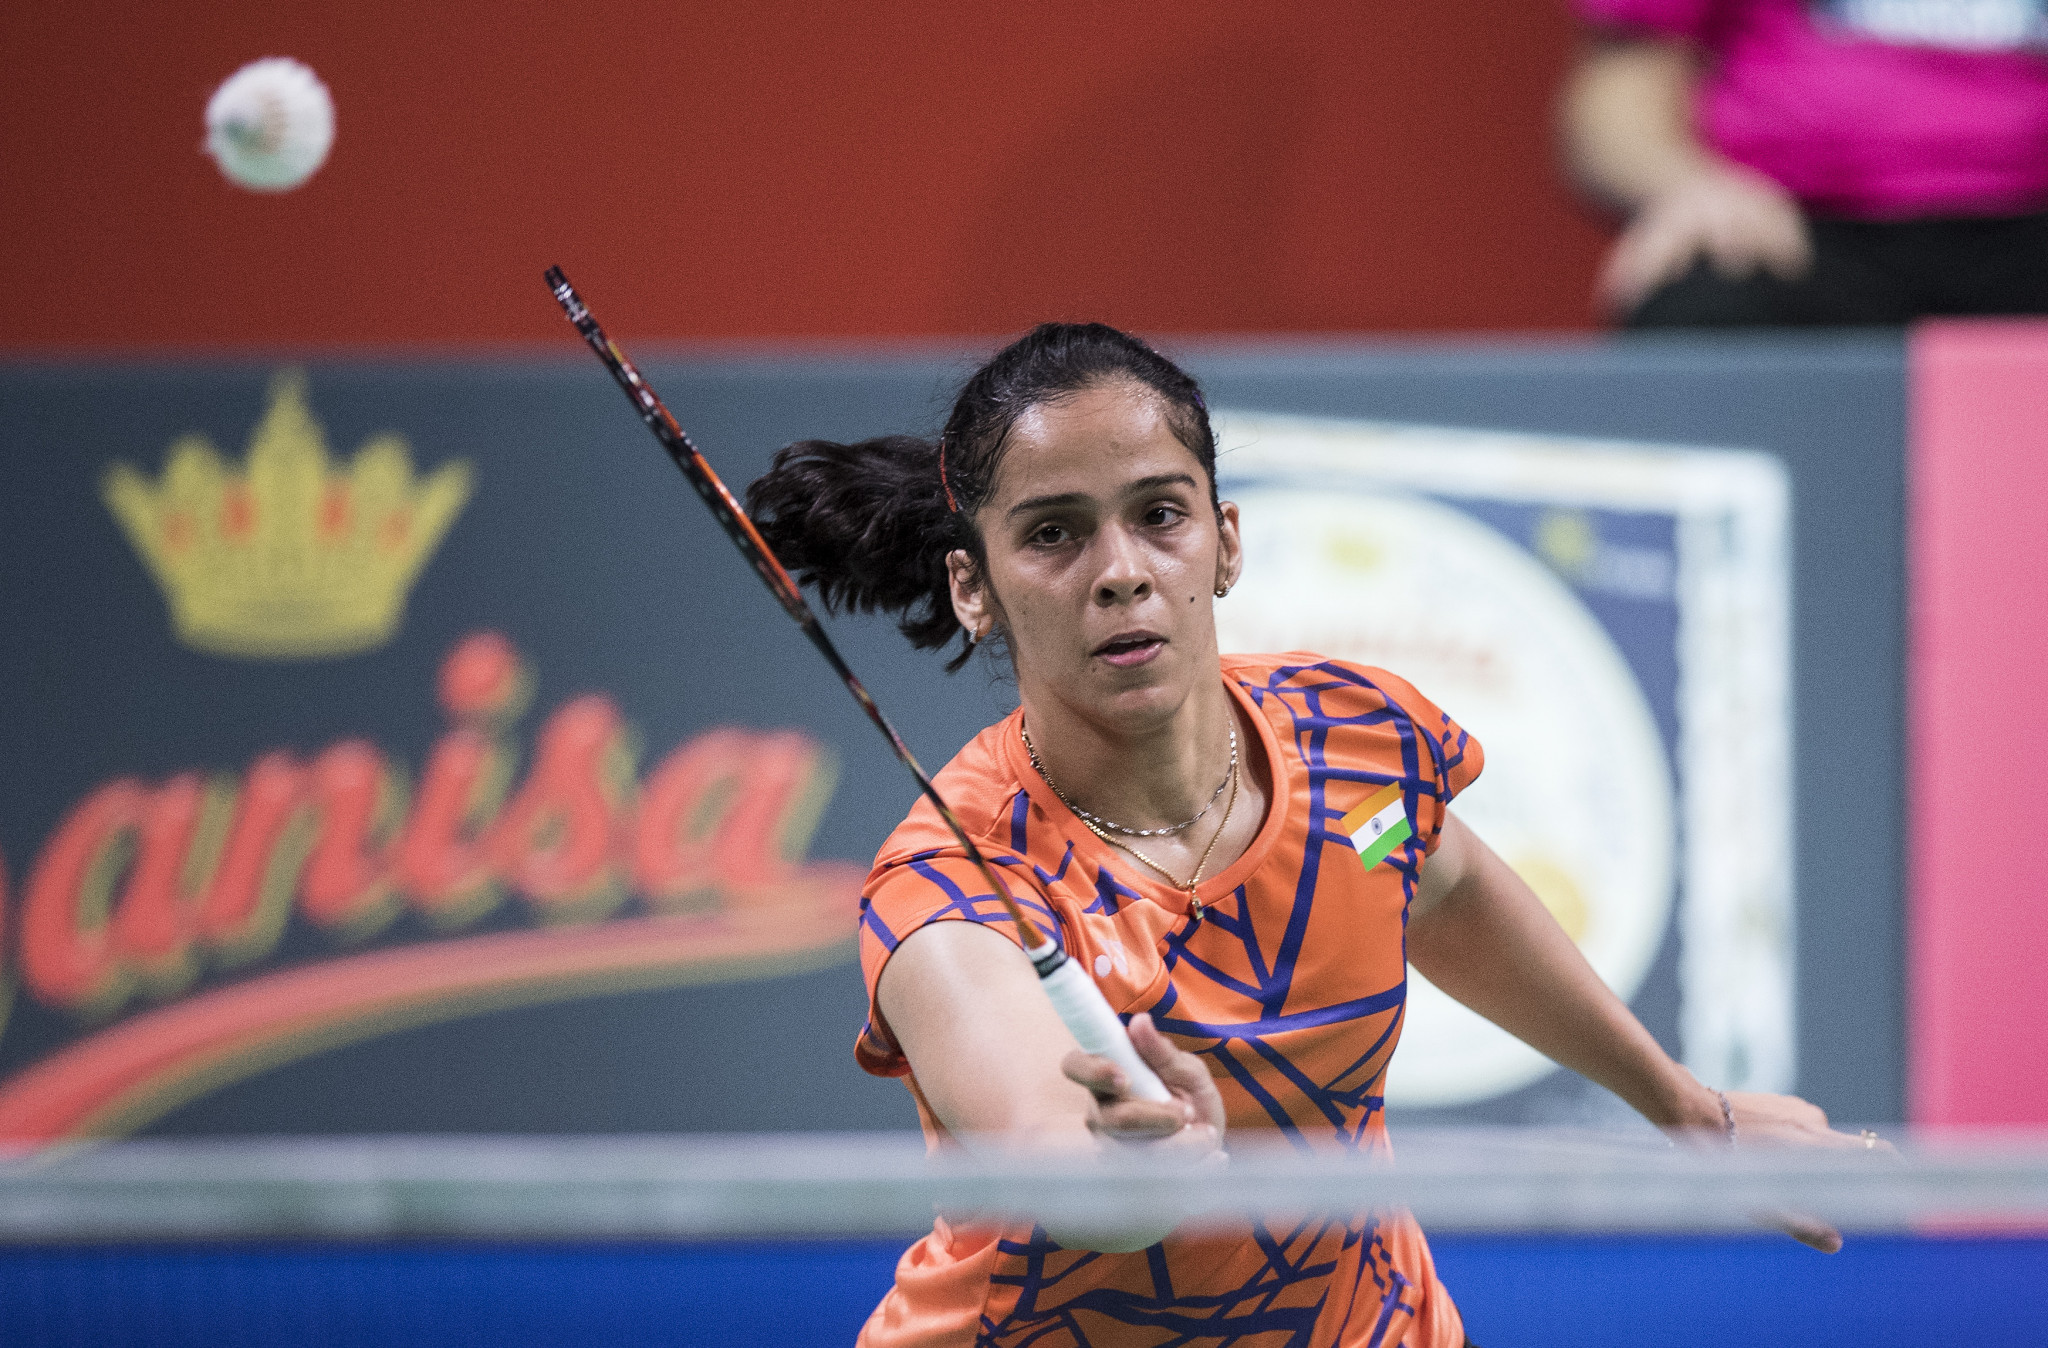 Seventh seed Saina Nehwal is through to the second round of the women's singles event ©Getty Images